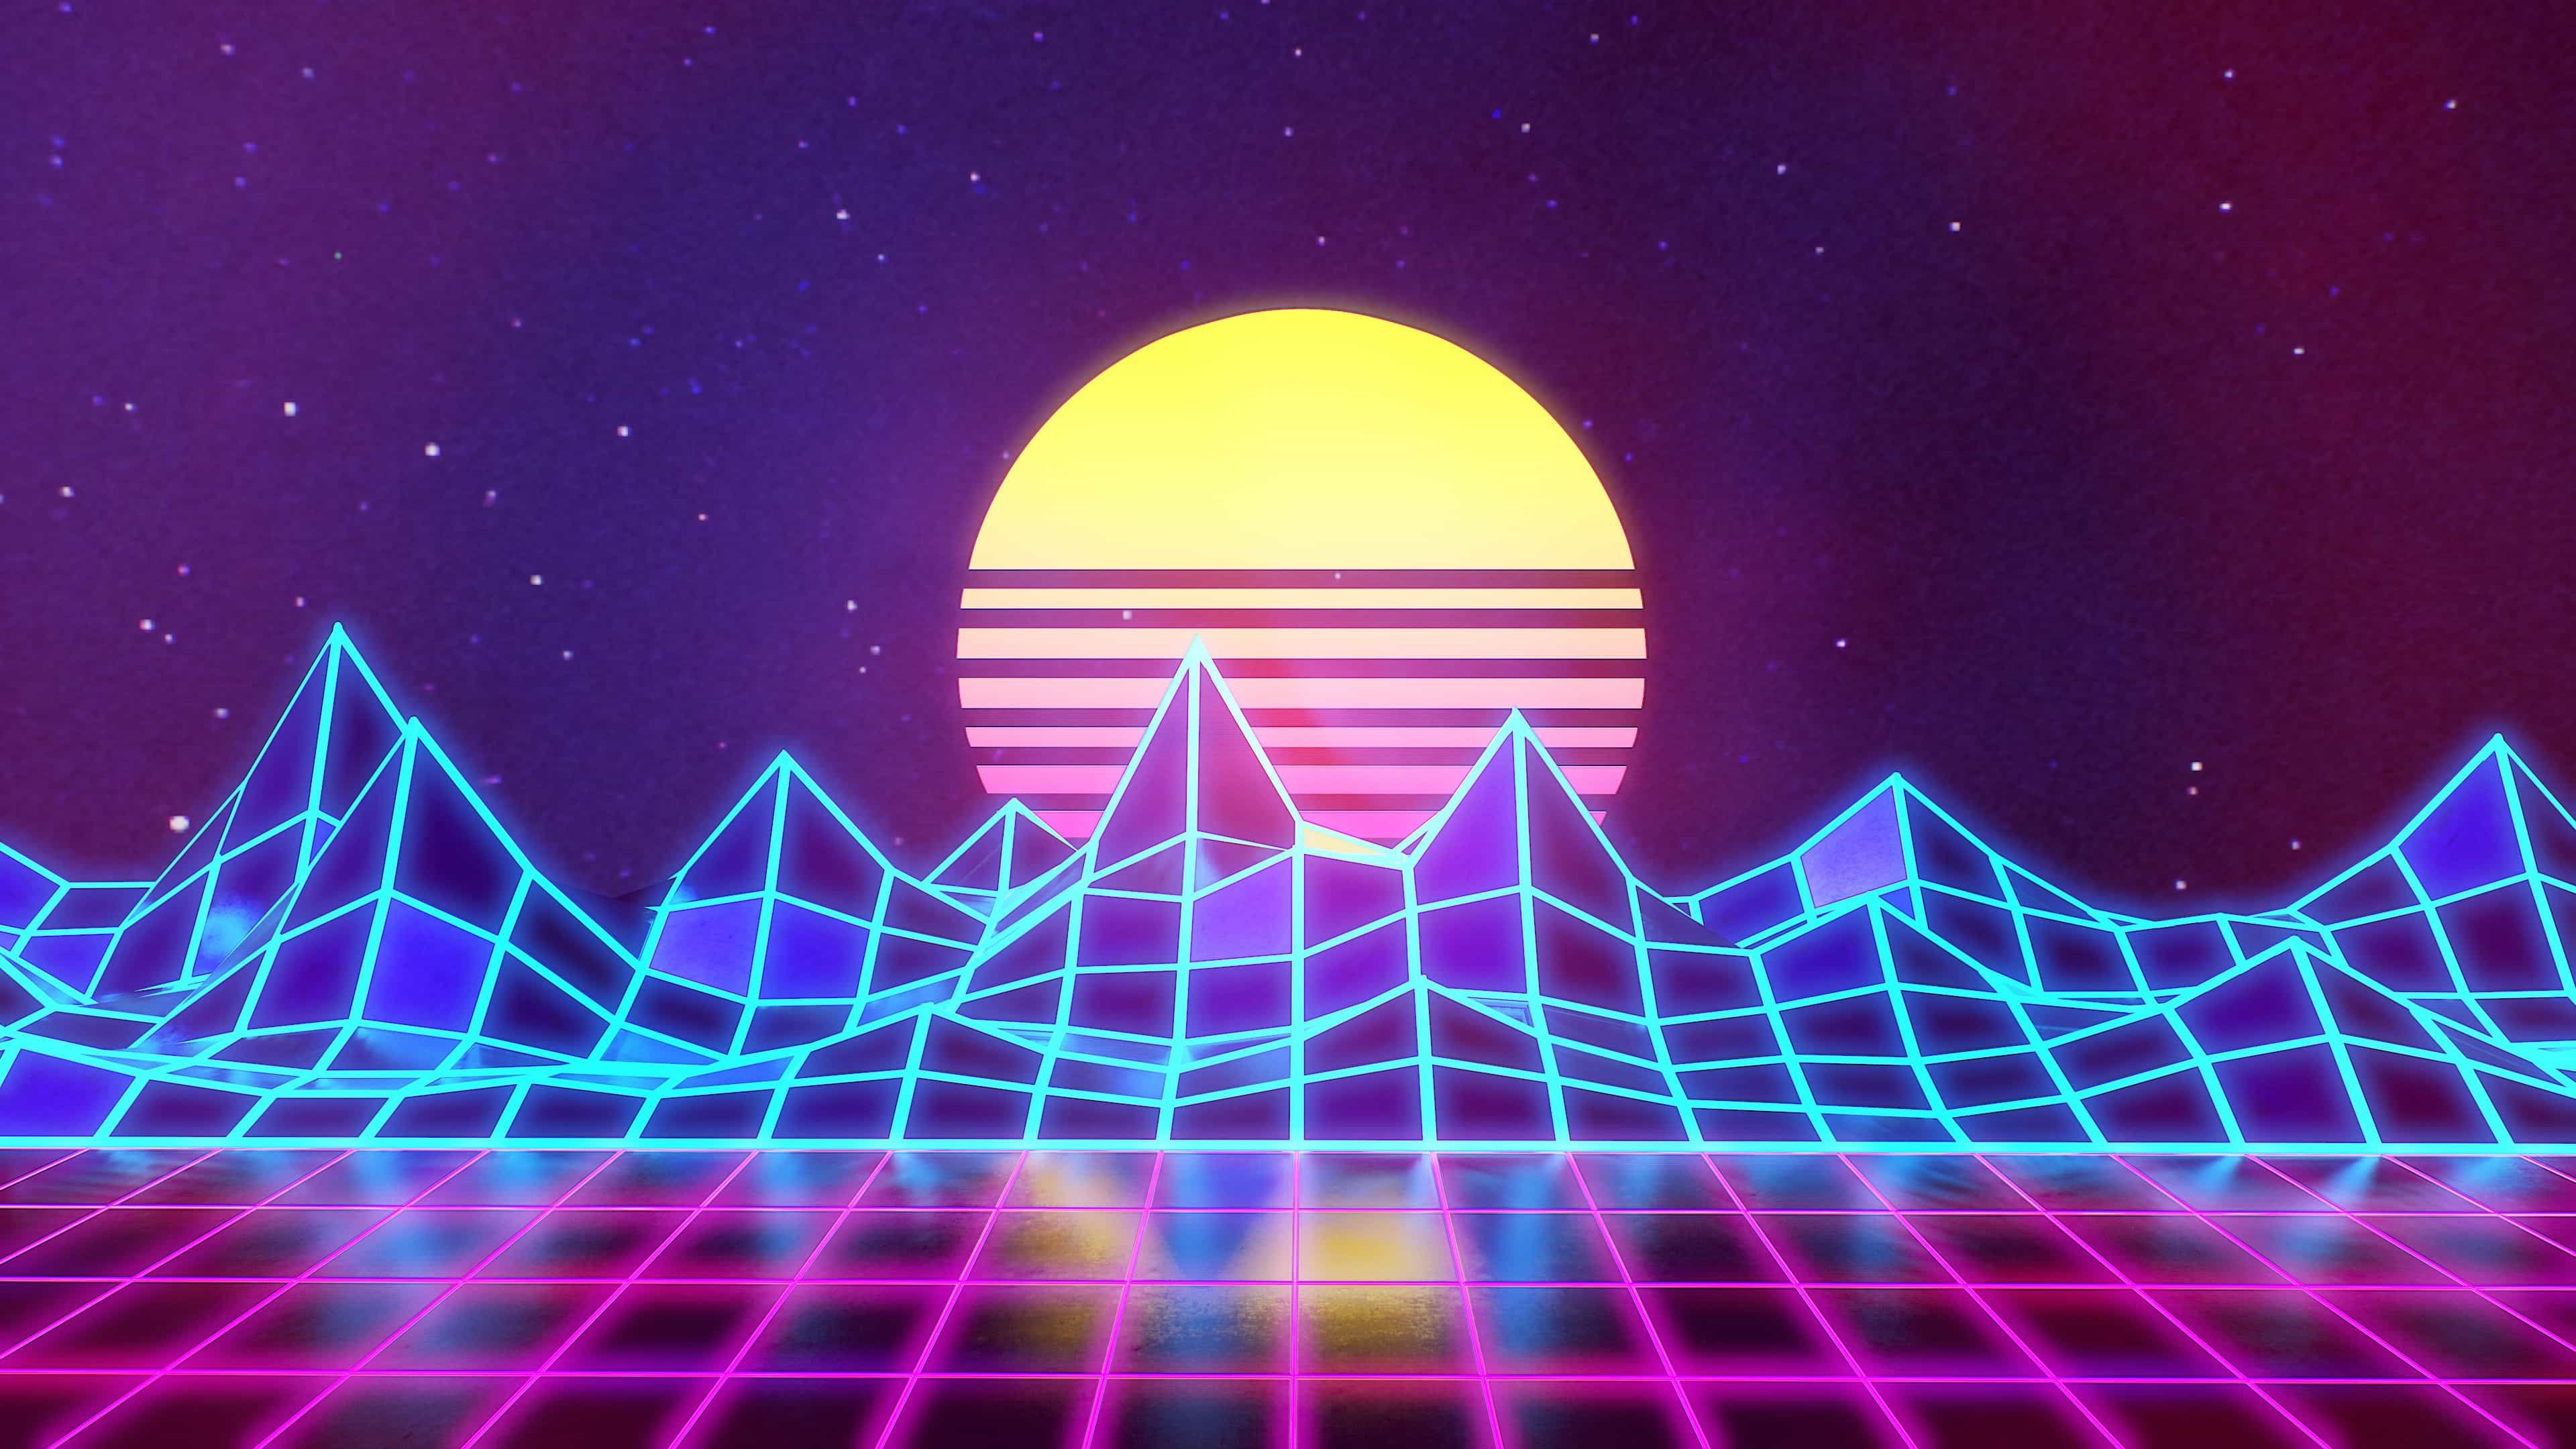 Synthwave More Music To Jack In To Album On Imgur Vaporwave Wallpaper Synthwave Neon 80s Background